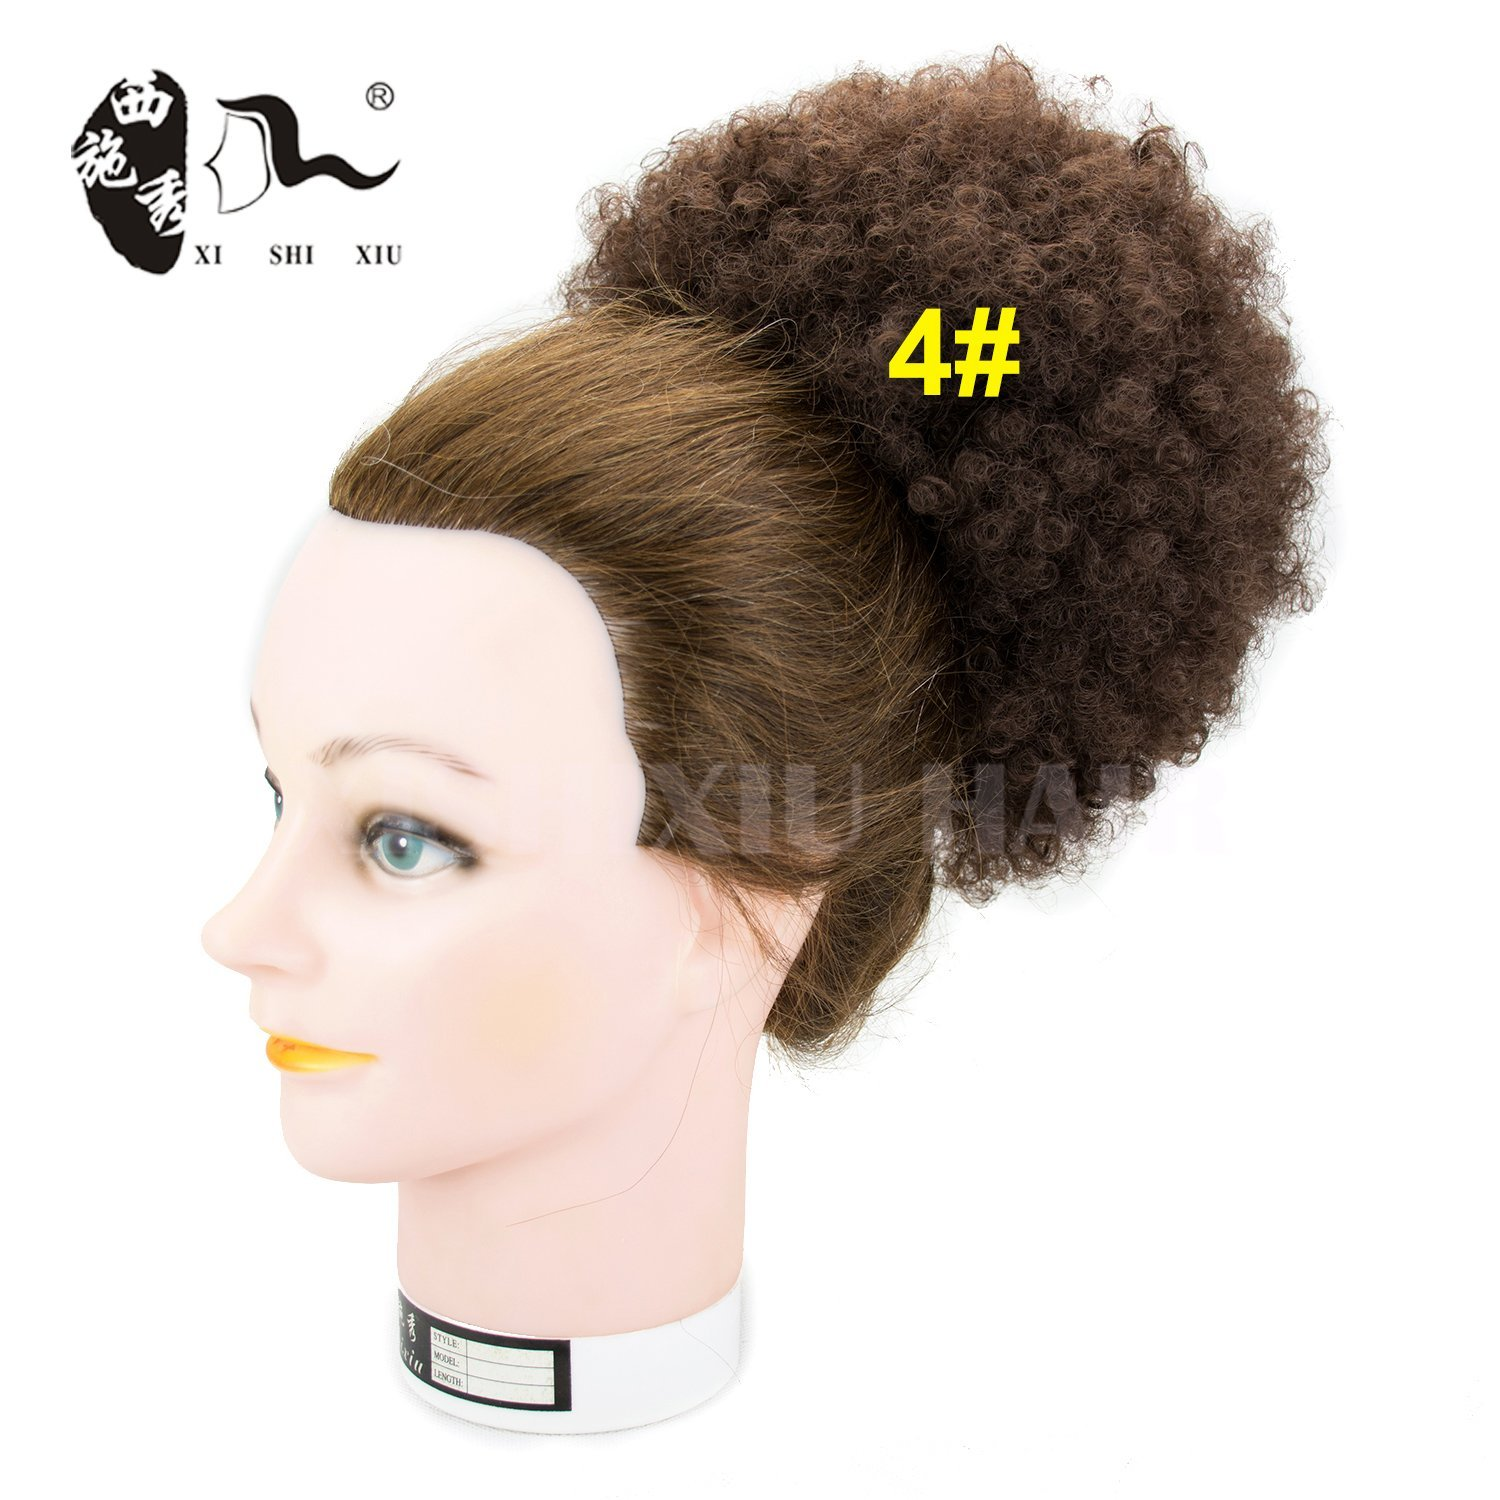 XI SHI XIU Big Curly Ponytail, Afro Pom Pom Hair Drawstring Ponytail Puff, African American Black Short Afro Kinky Curly Hair Extension, Synthetic Puff Hair (4#)